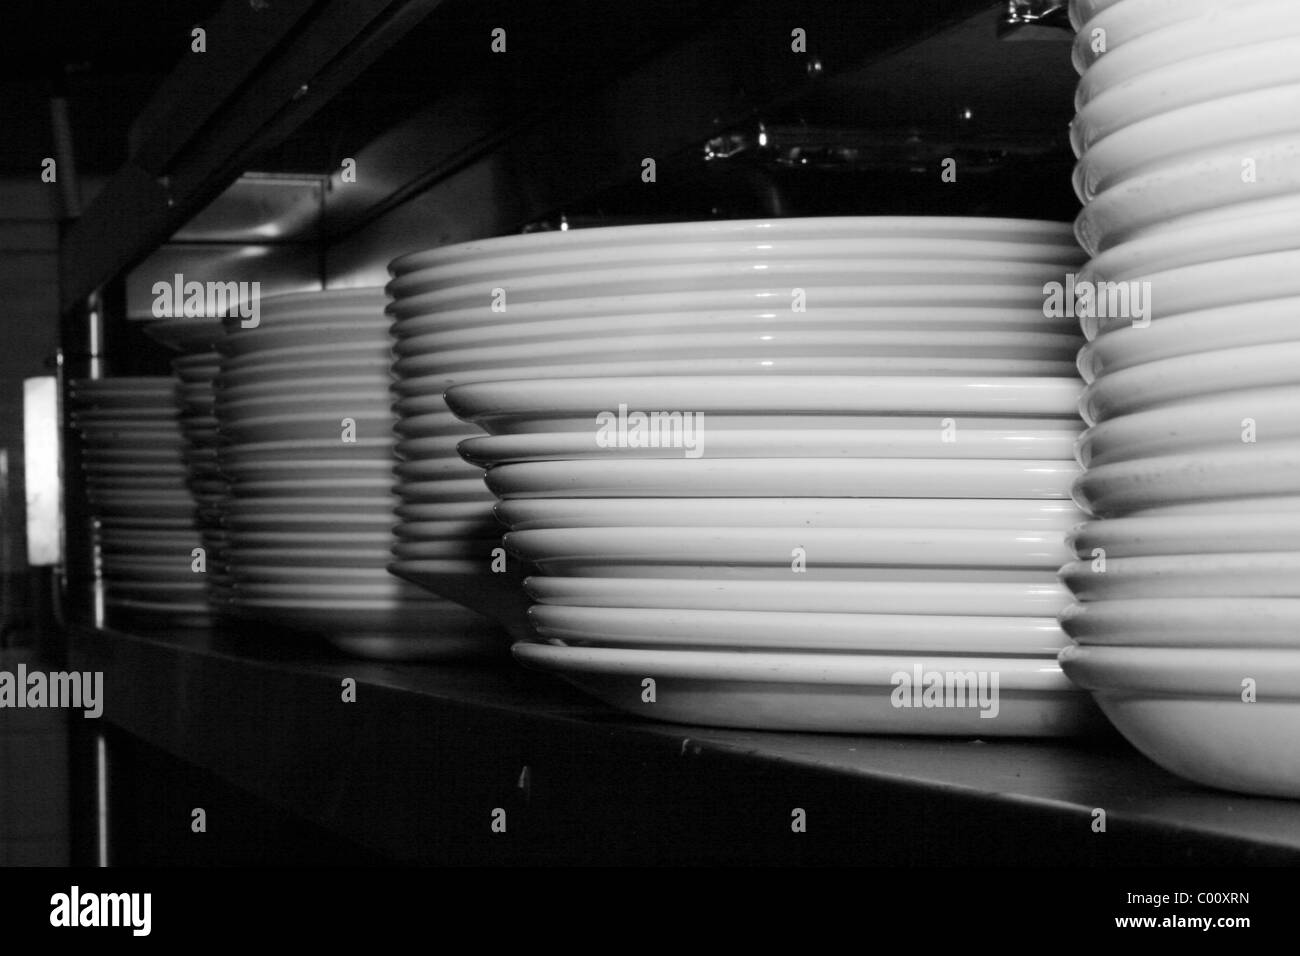 stacked plates on shelf in kitchen - Stock Image